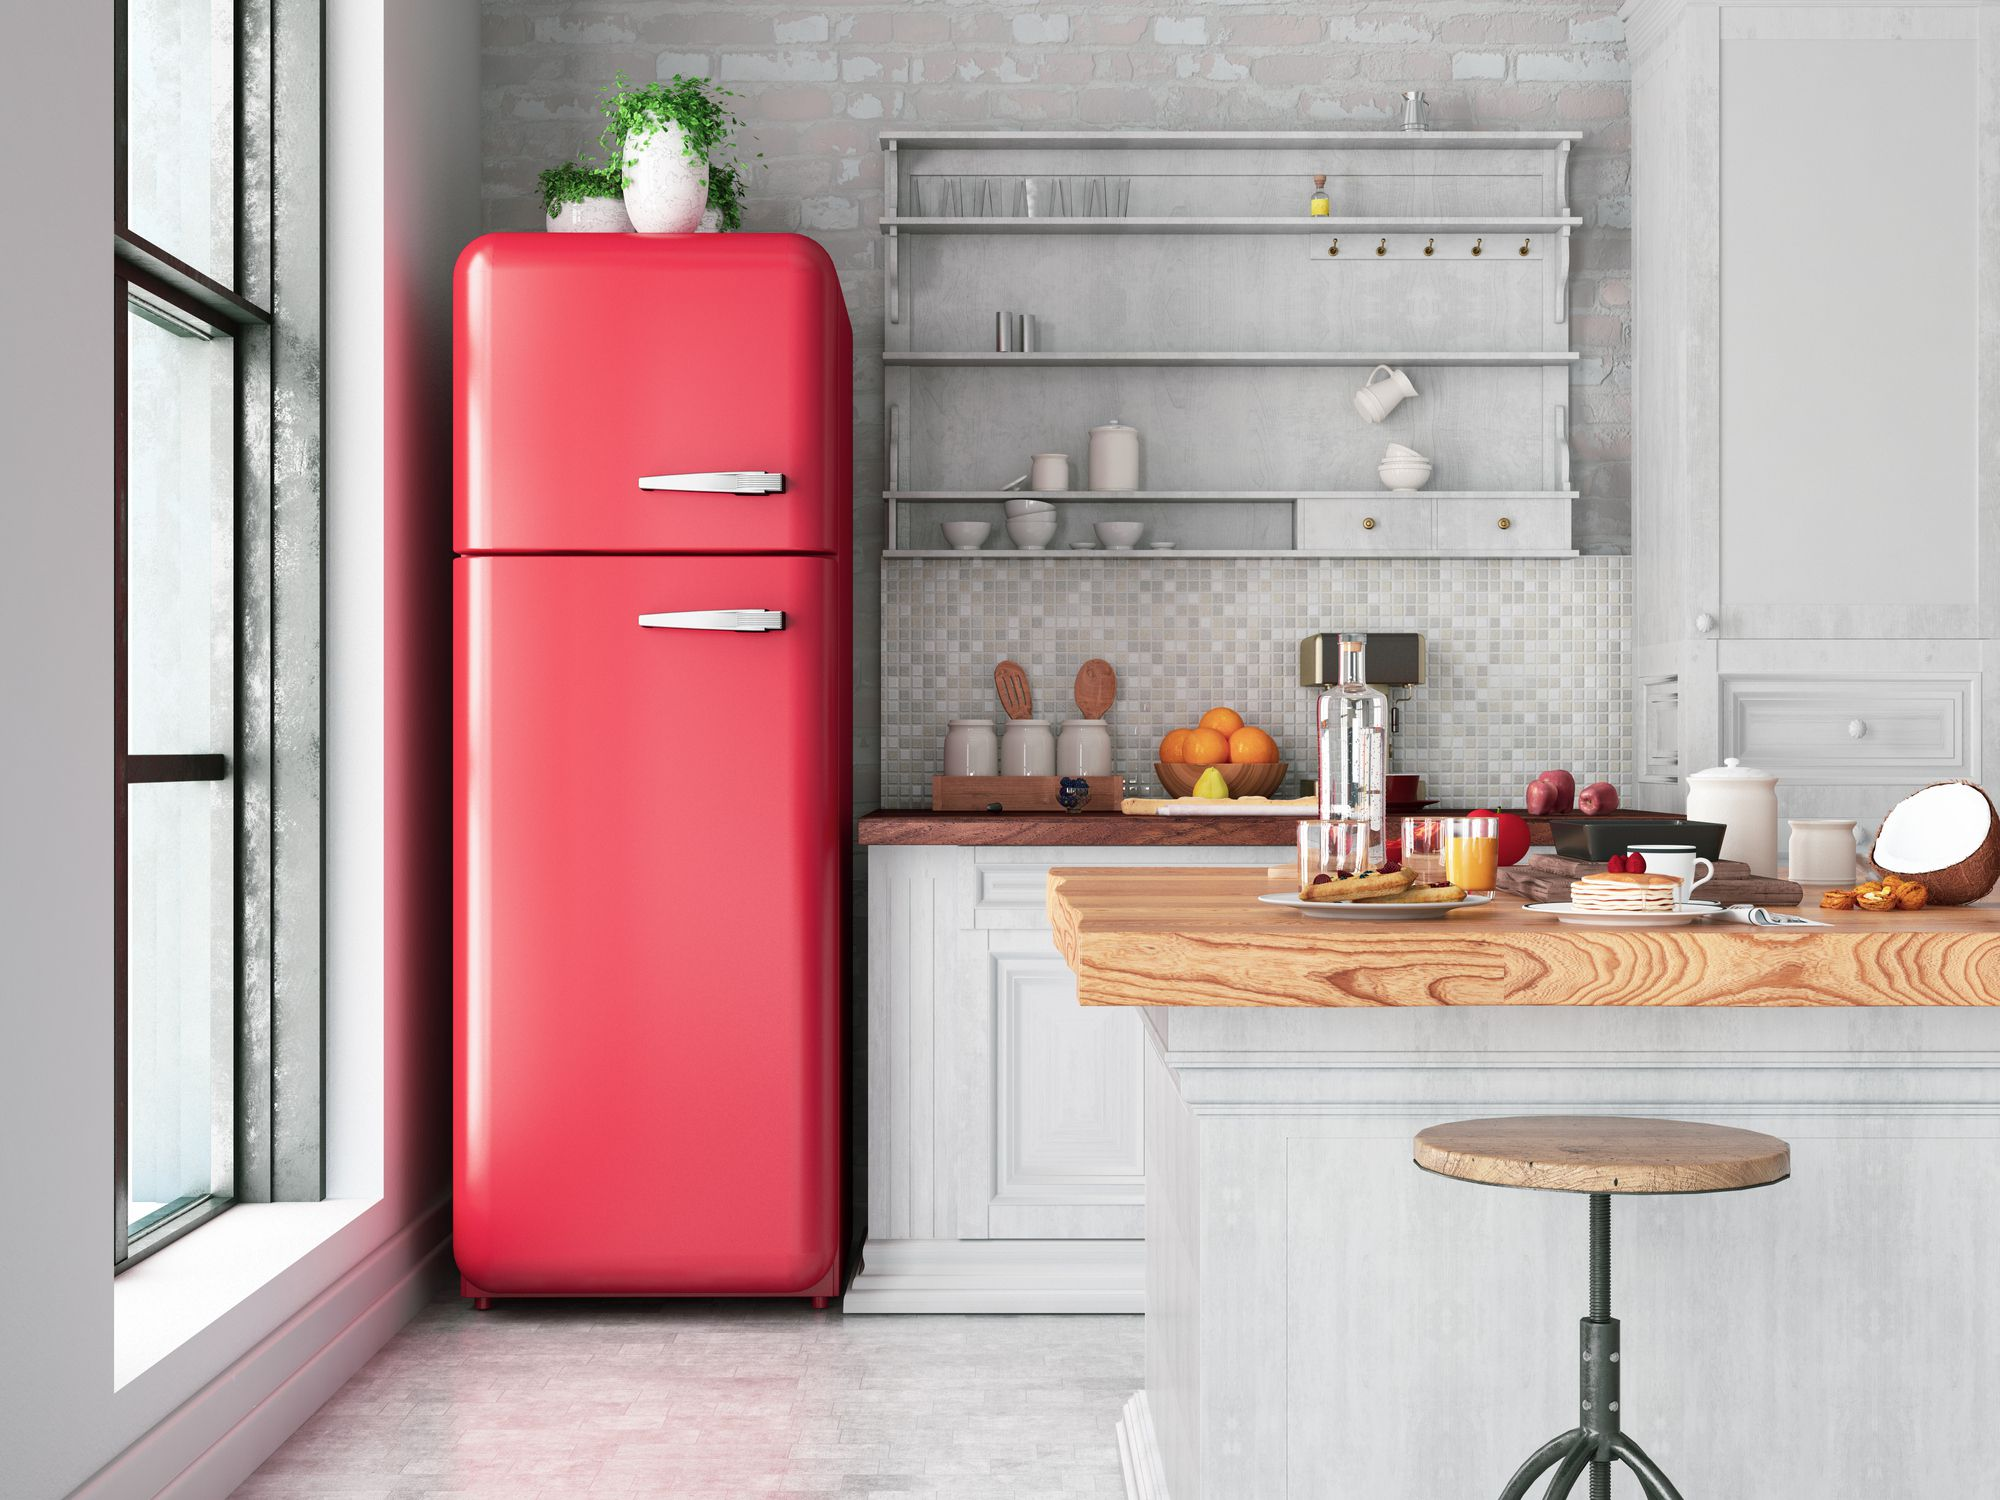 The 8 Best Refrigerator Brands Of 2020